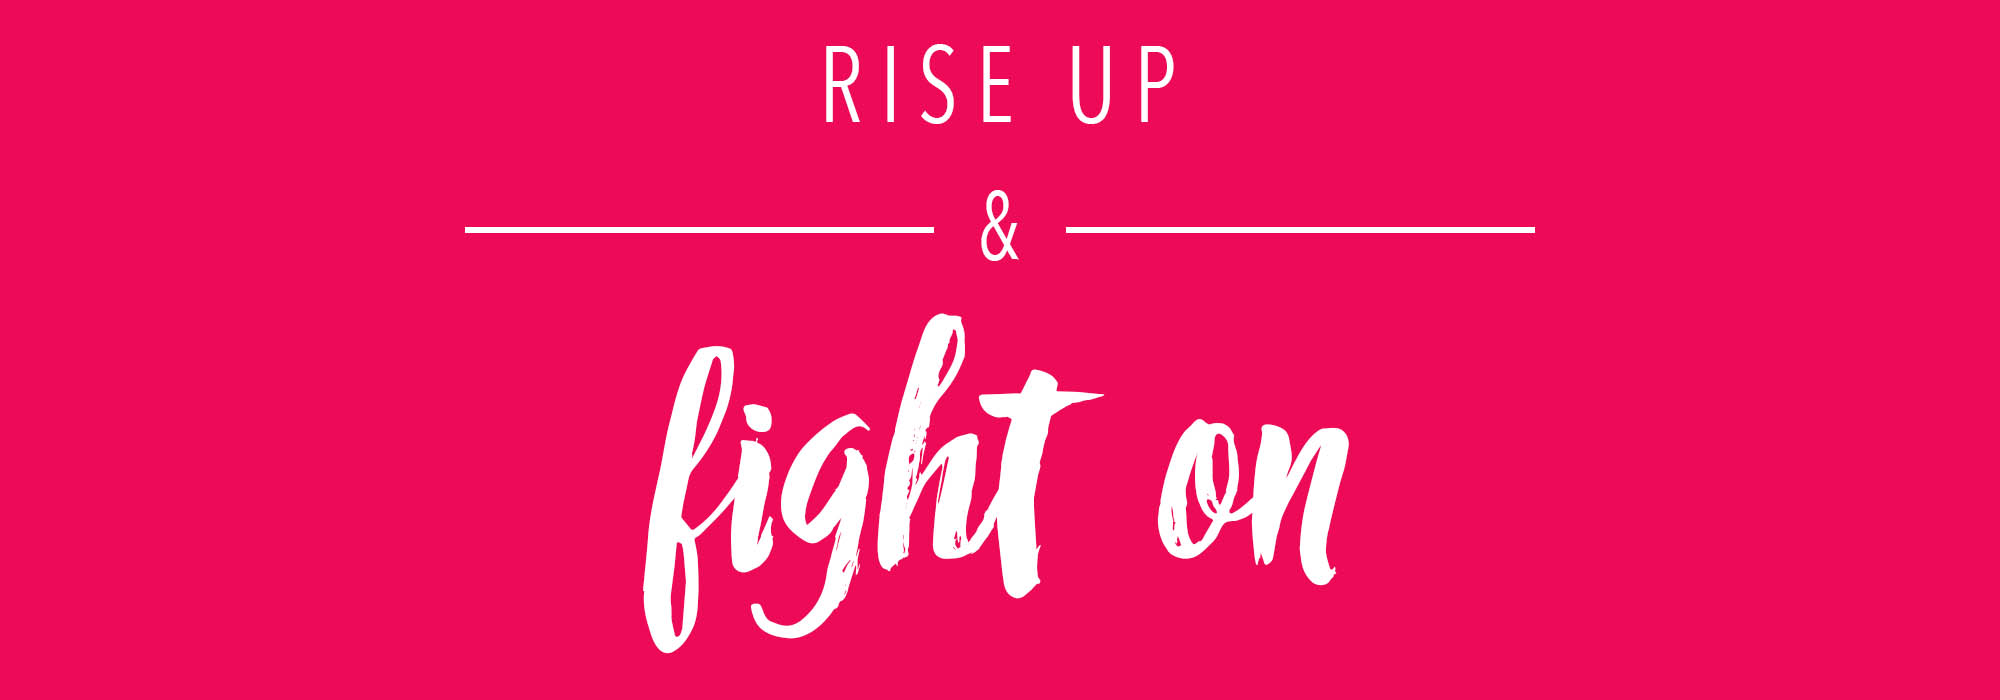 Rise Up & Fight On